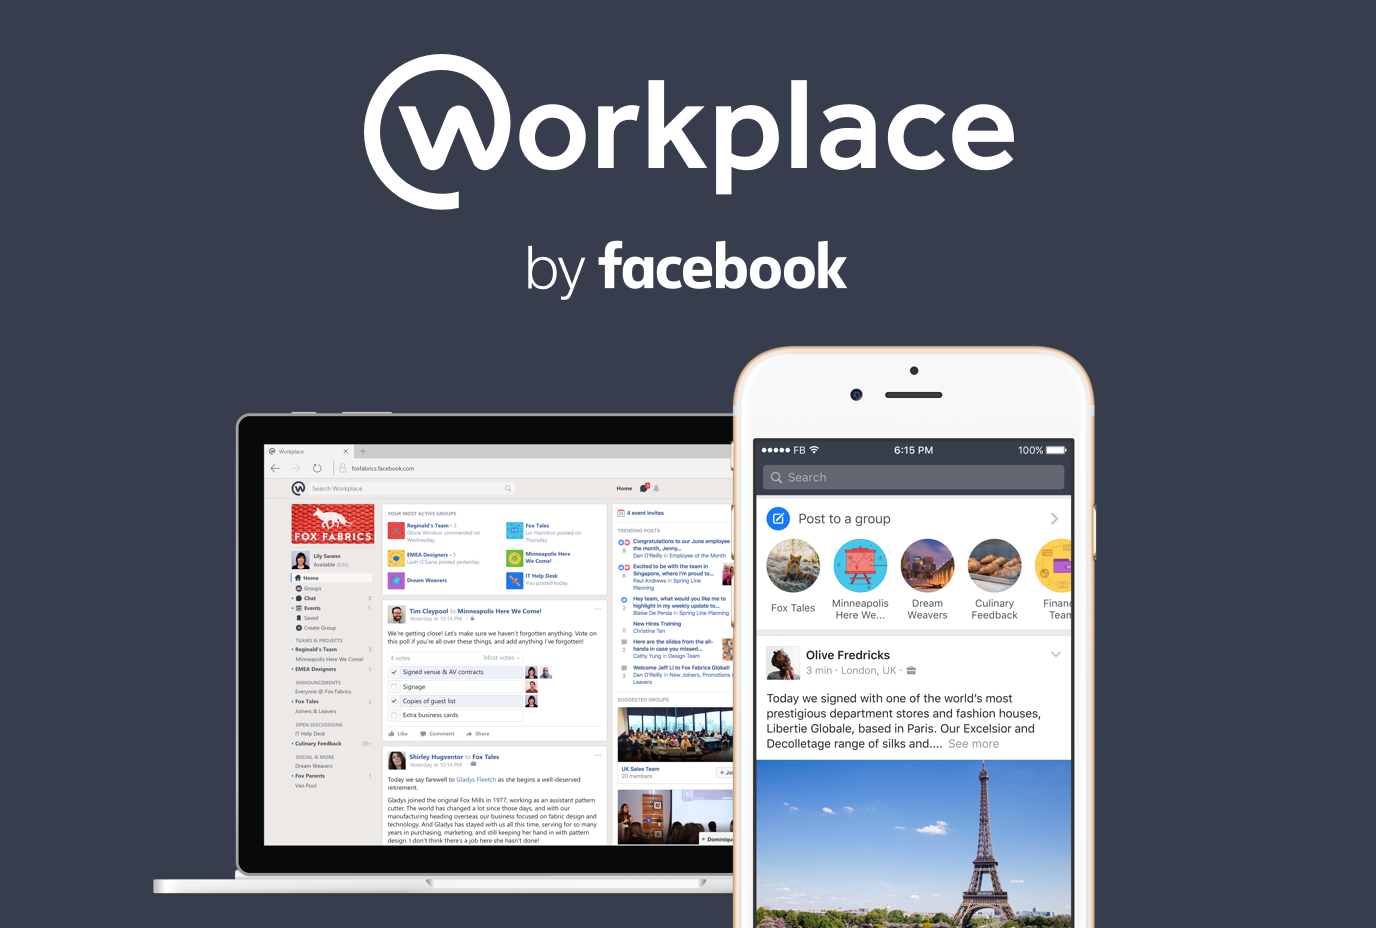 Starting February 2021, Facebook Workplace will no longer be free